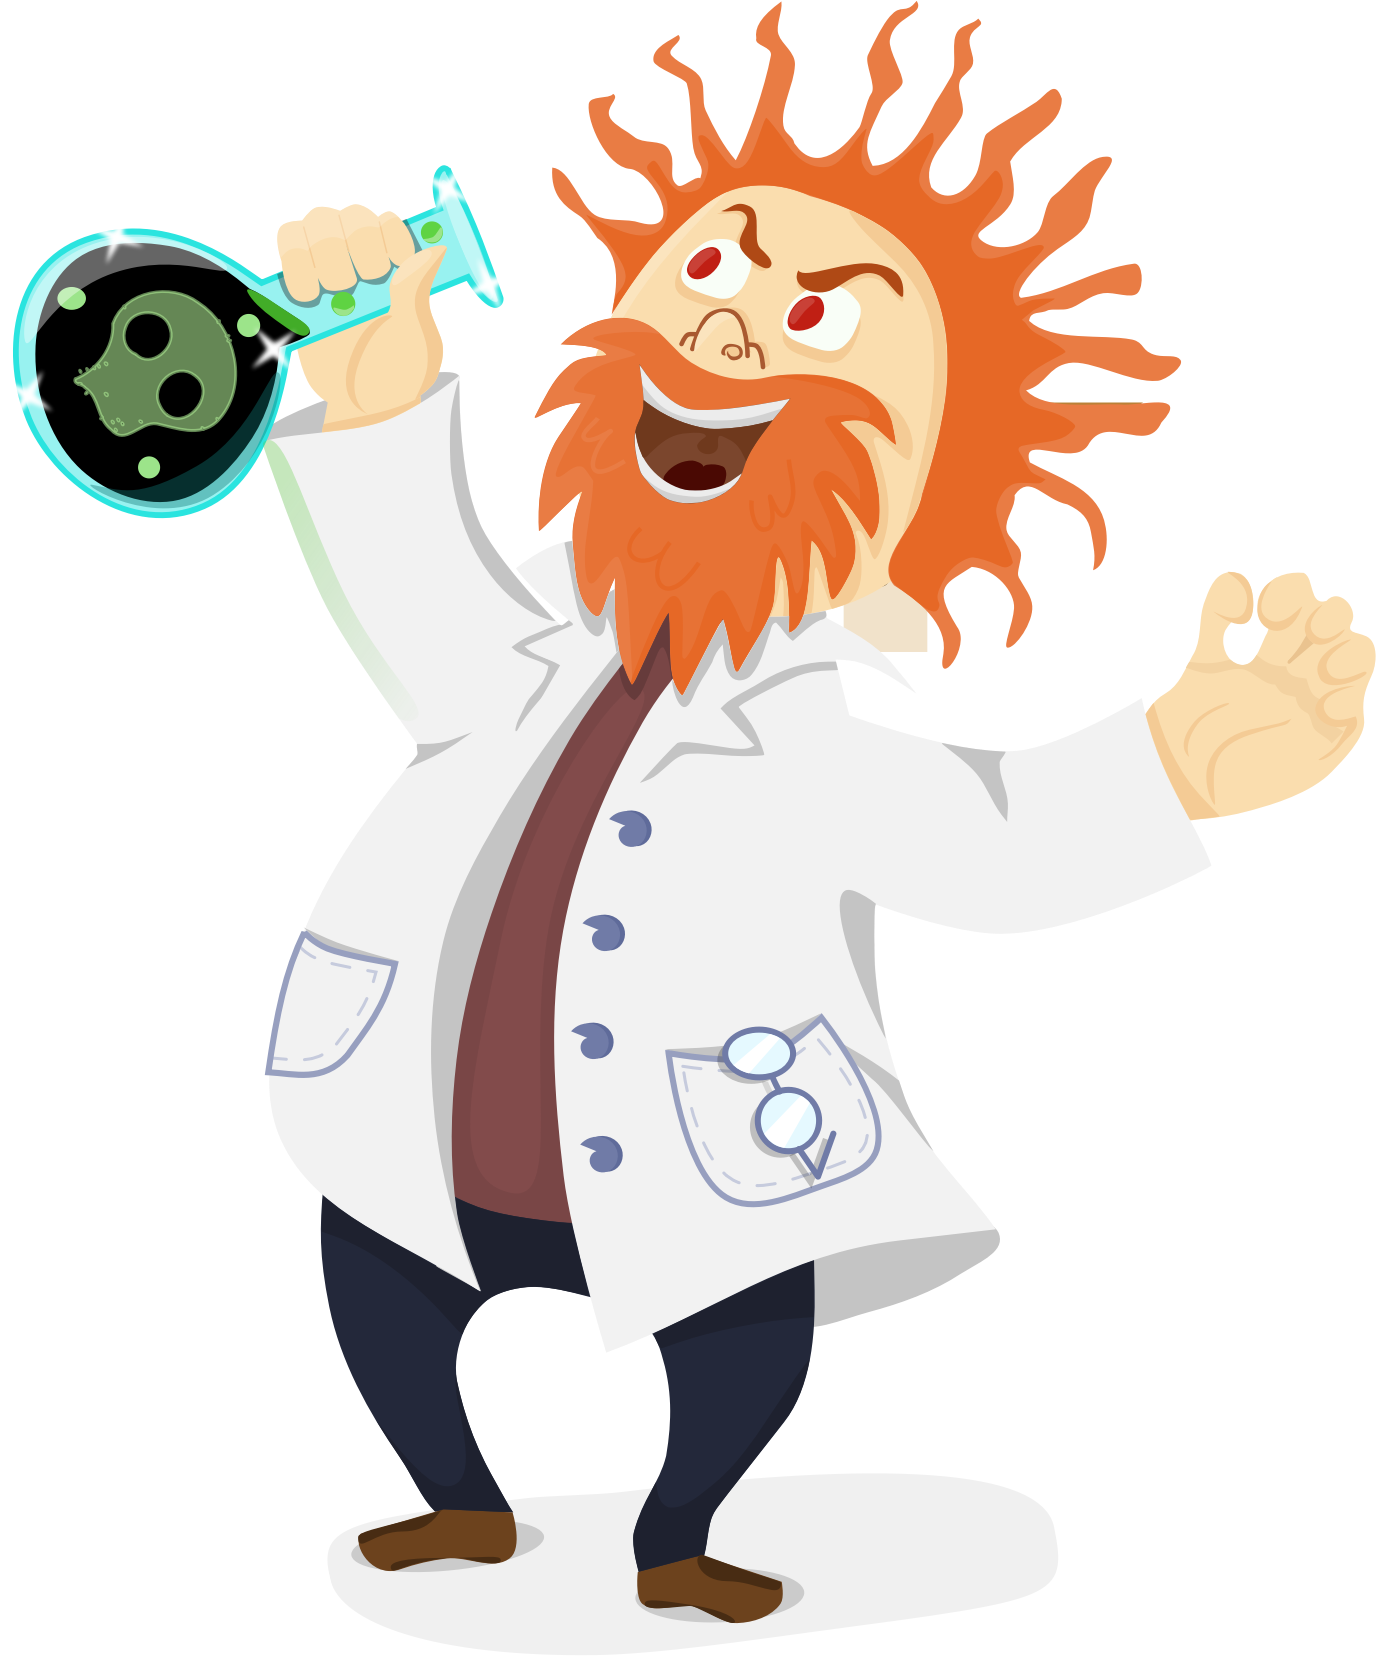 Female Mad Scientist Png - Female clipart forensic scientist, Female forensic scientist ...